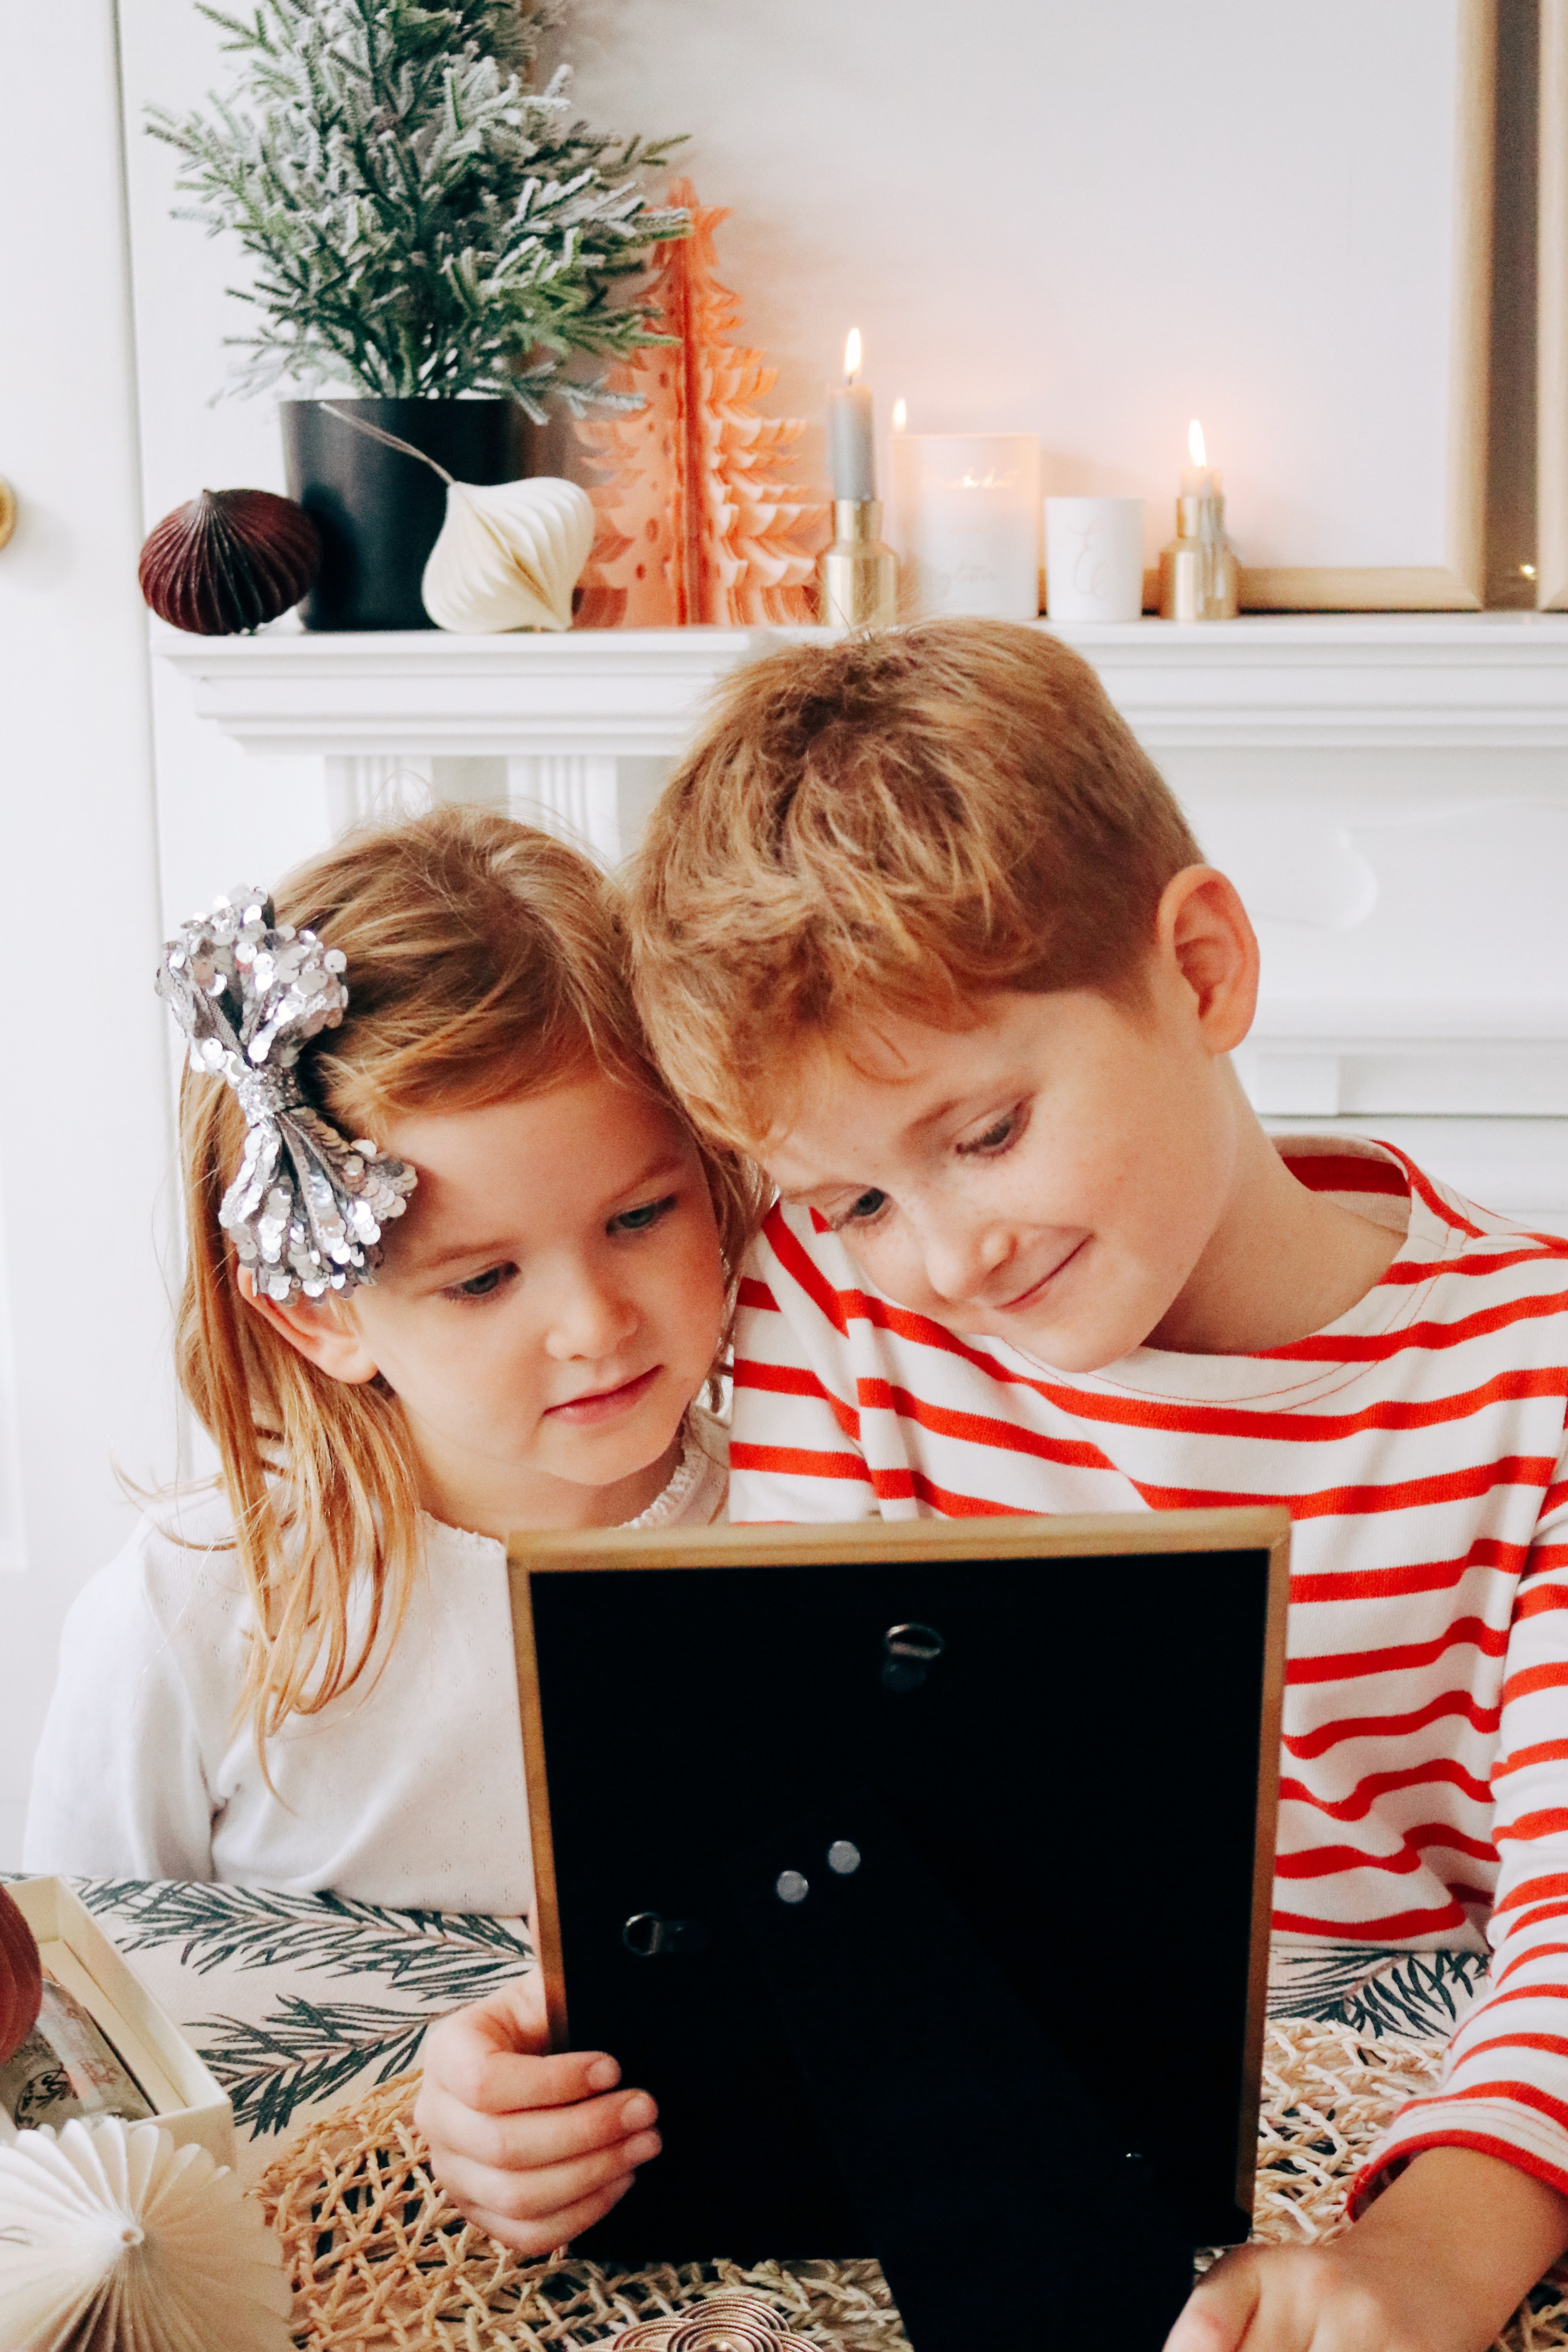 Photo Frame gift ideas for the parents or in-laws this Christmas 2018